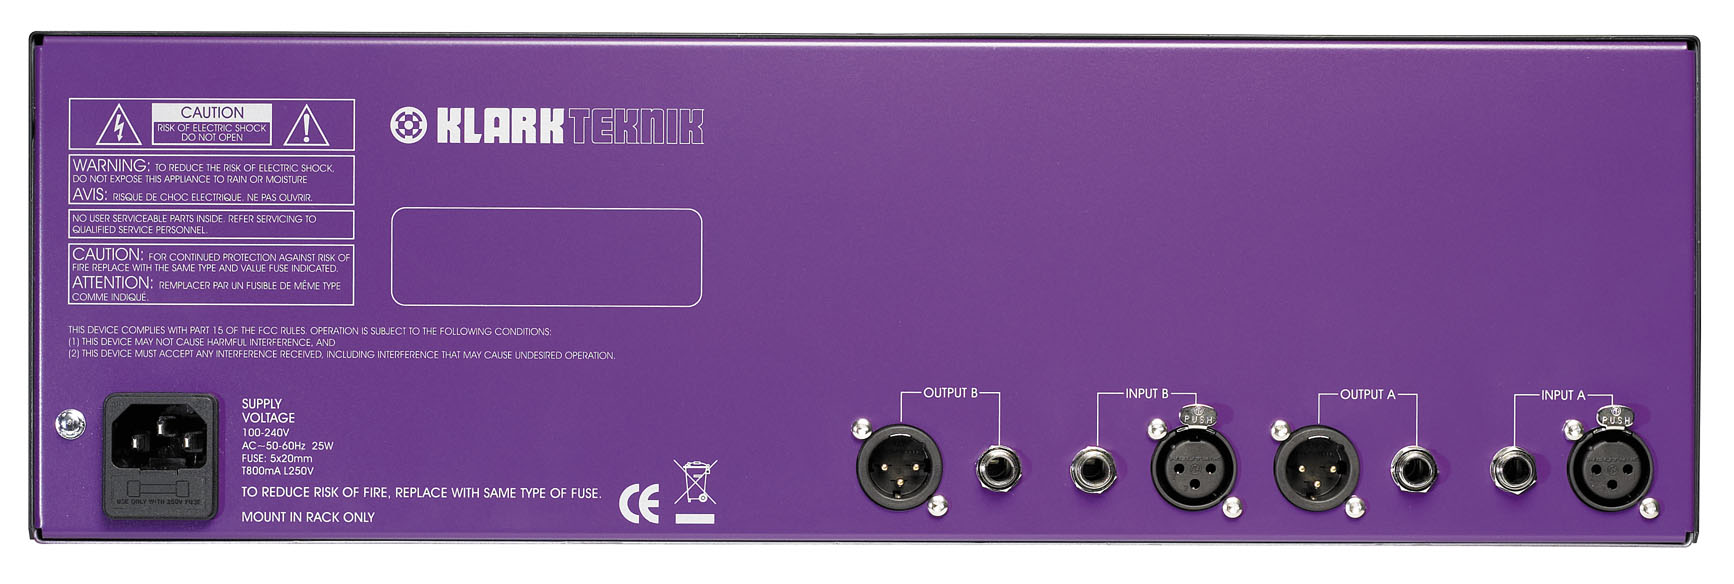 Klark Teknik Square One Graphic Rear View